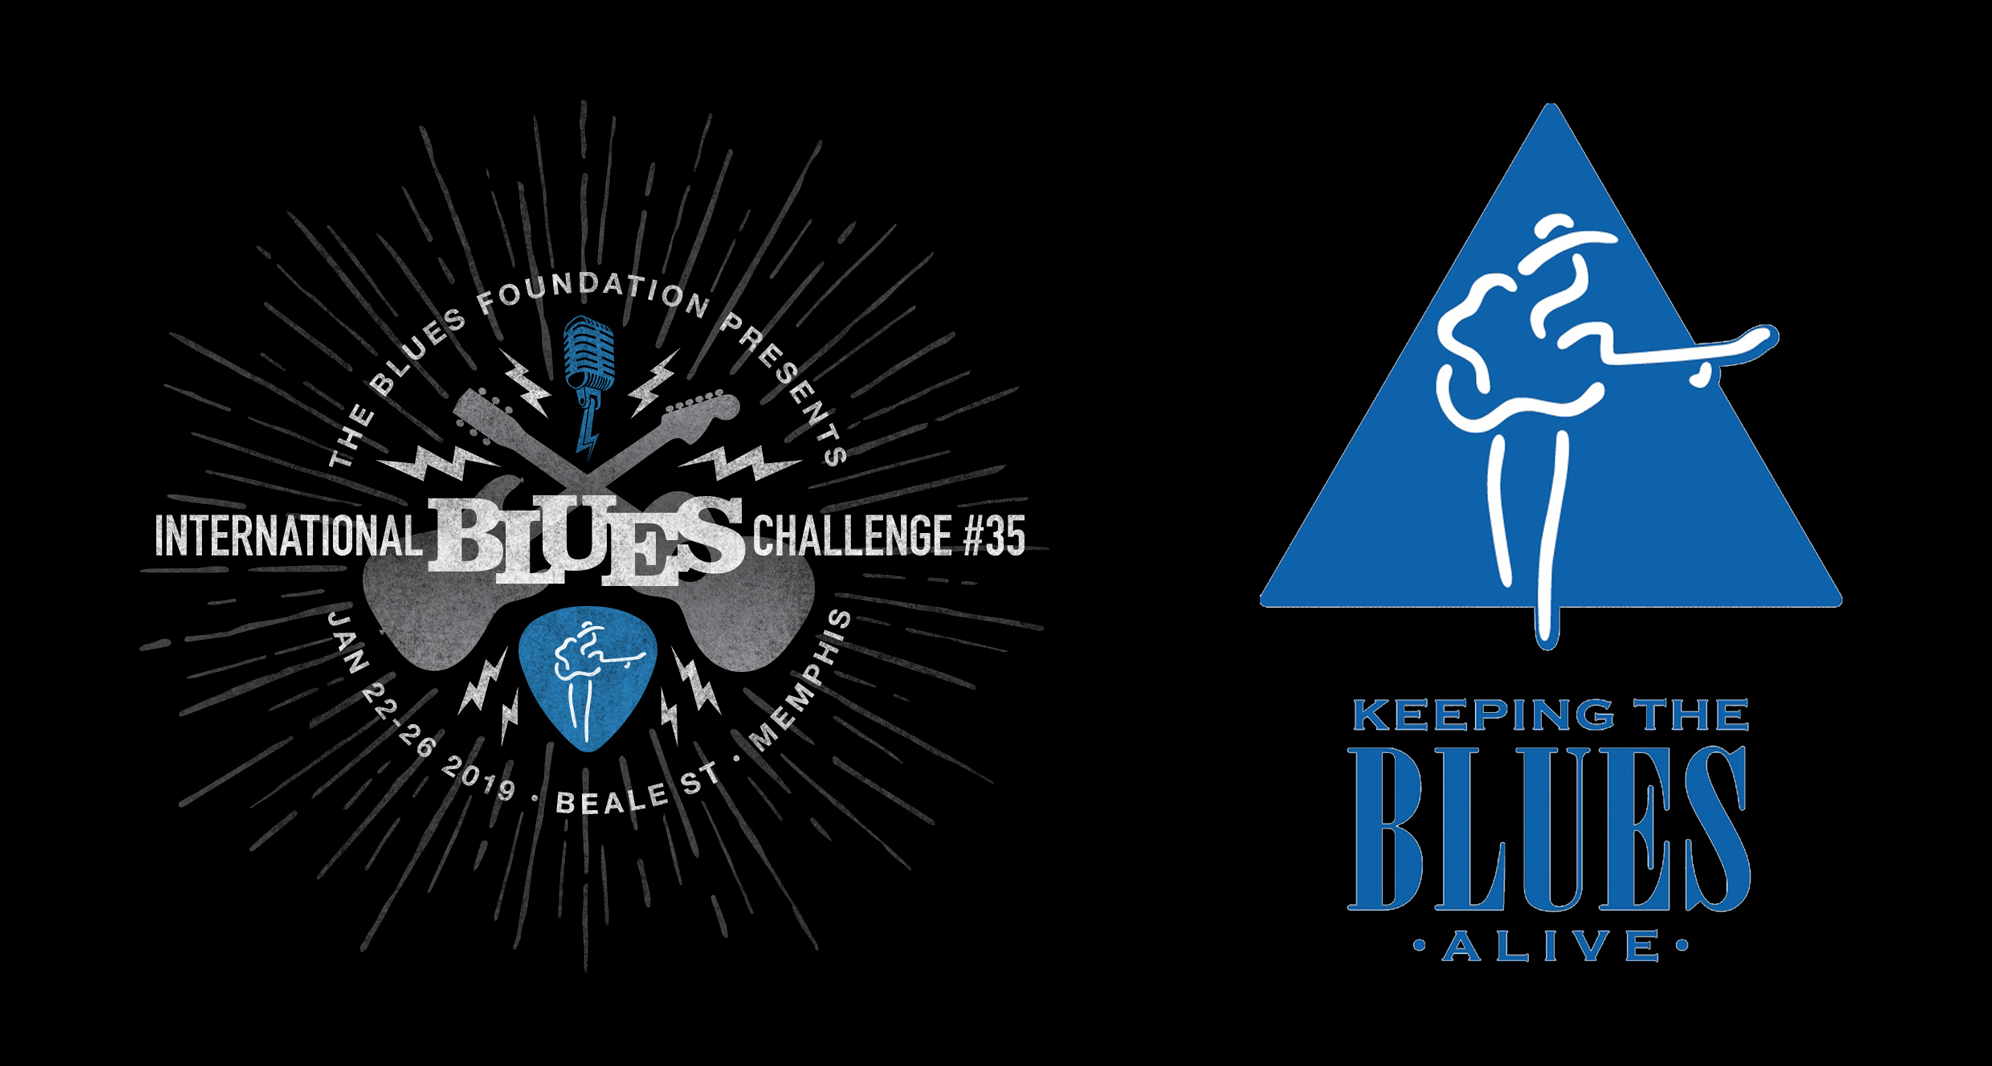 ac958e27f75b 2016 BLUES HALL OF FAME INDUCTEES - Blues Foundation